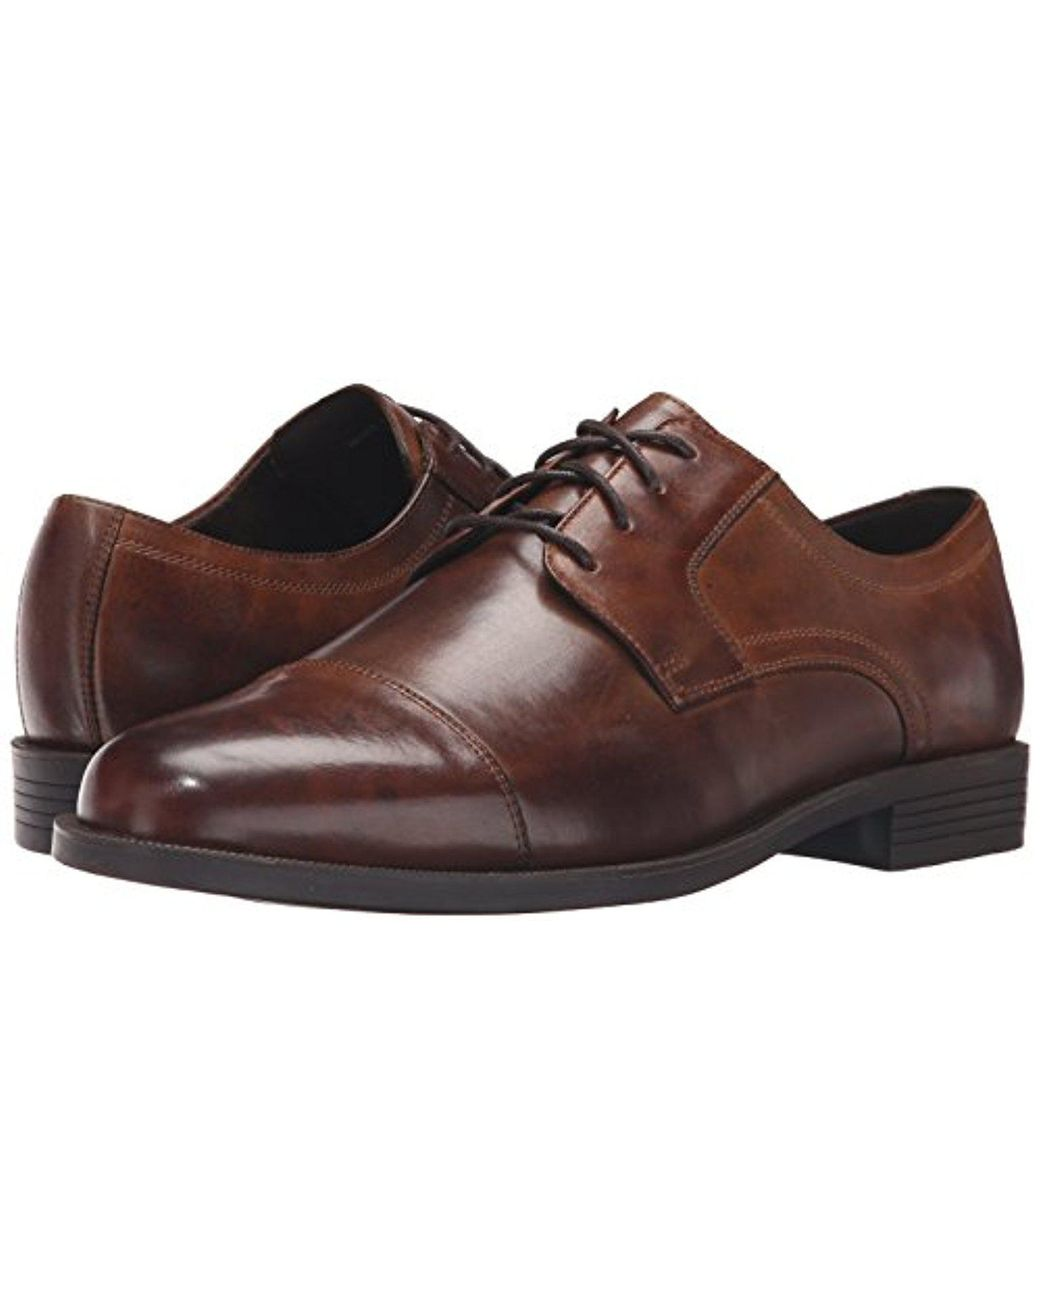 878edec95bc Cole Haan Dustin Cap Ox Ii Oxford in Brown for Men - Save 14% - Lyst